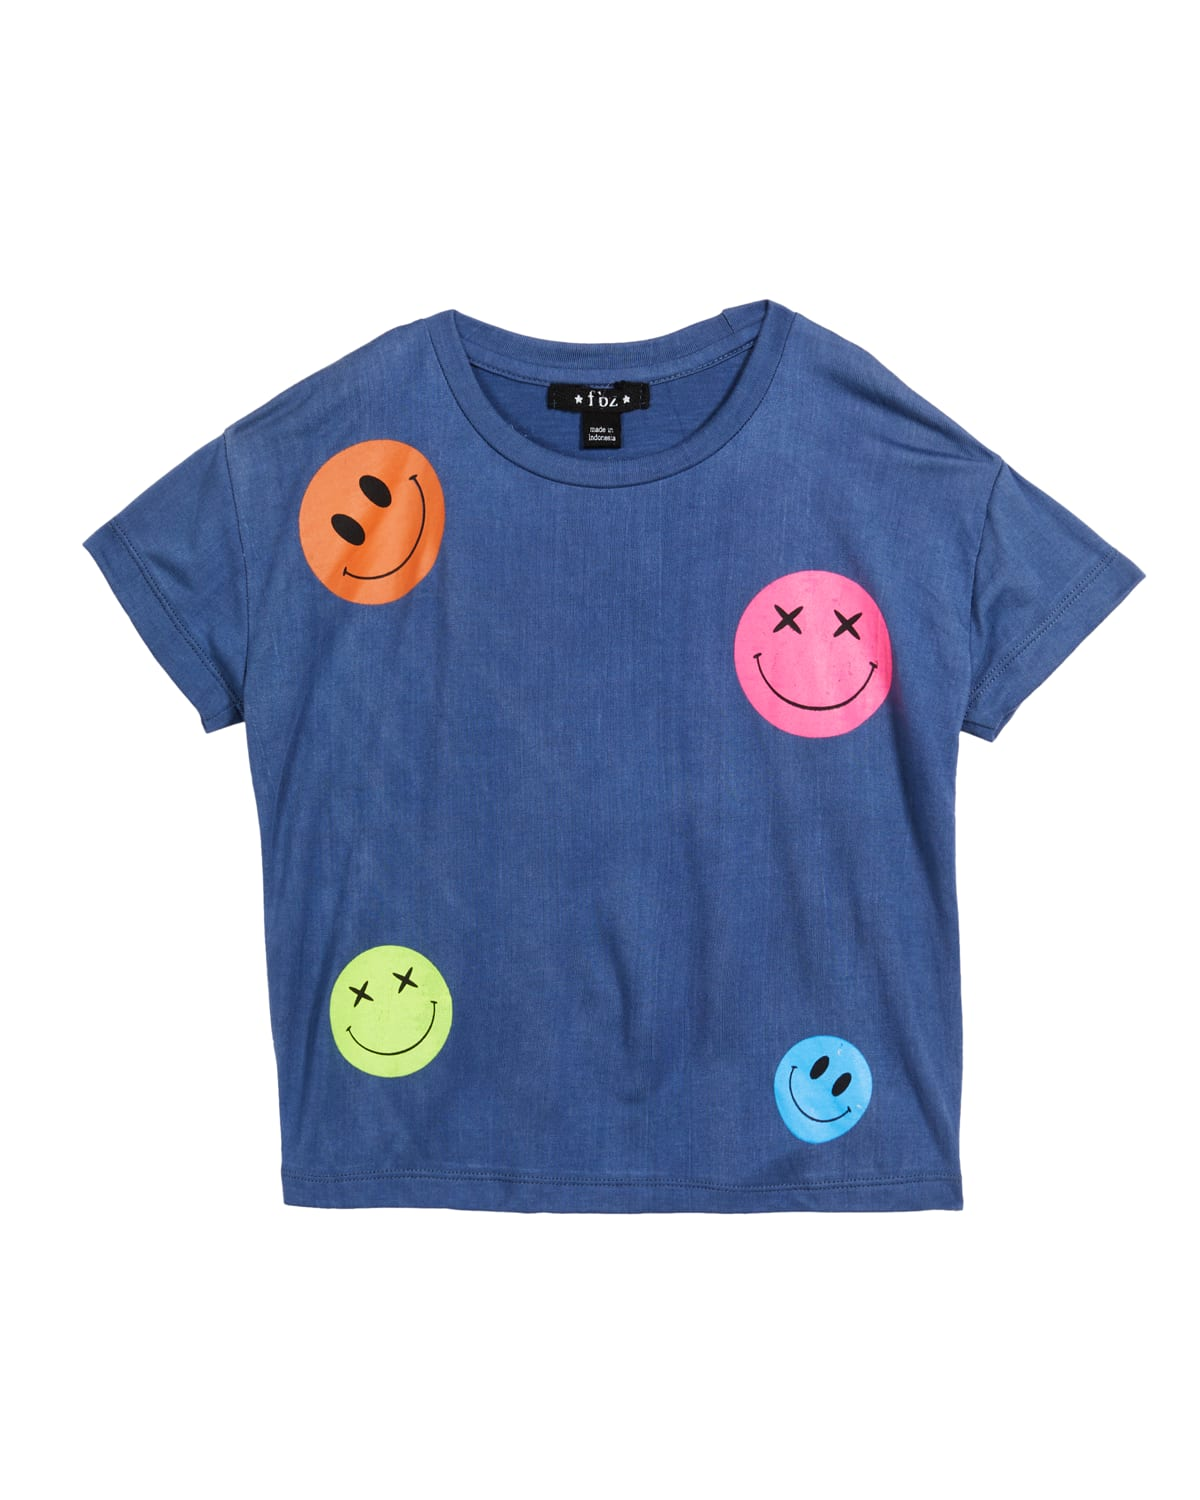 Girl's Smiley Face Graphic Short-Sleeve Shirt